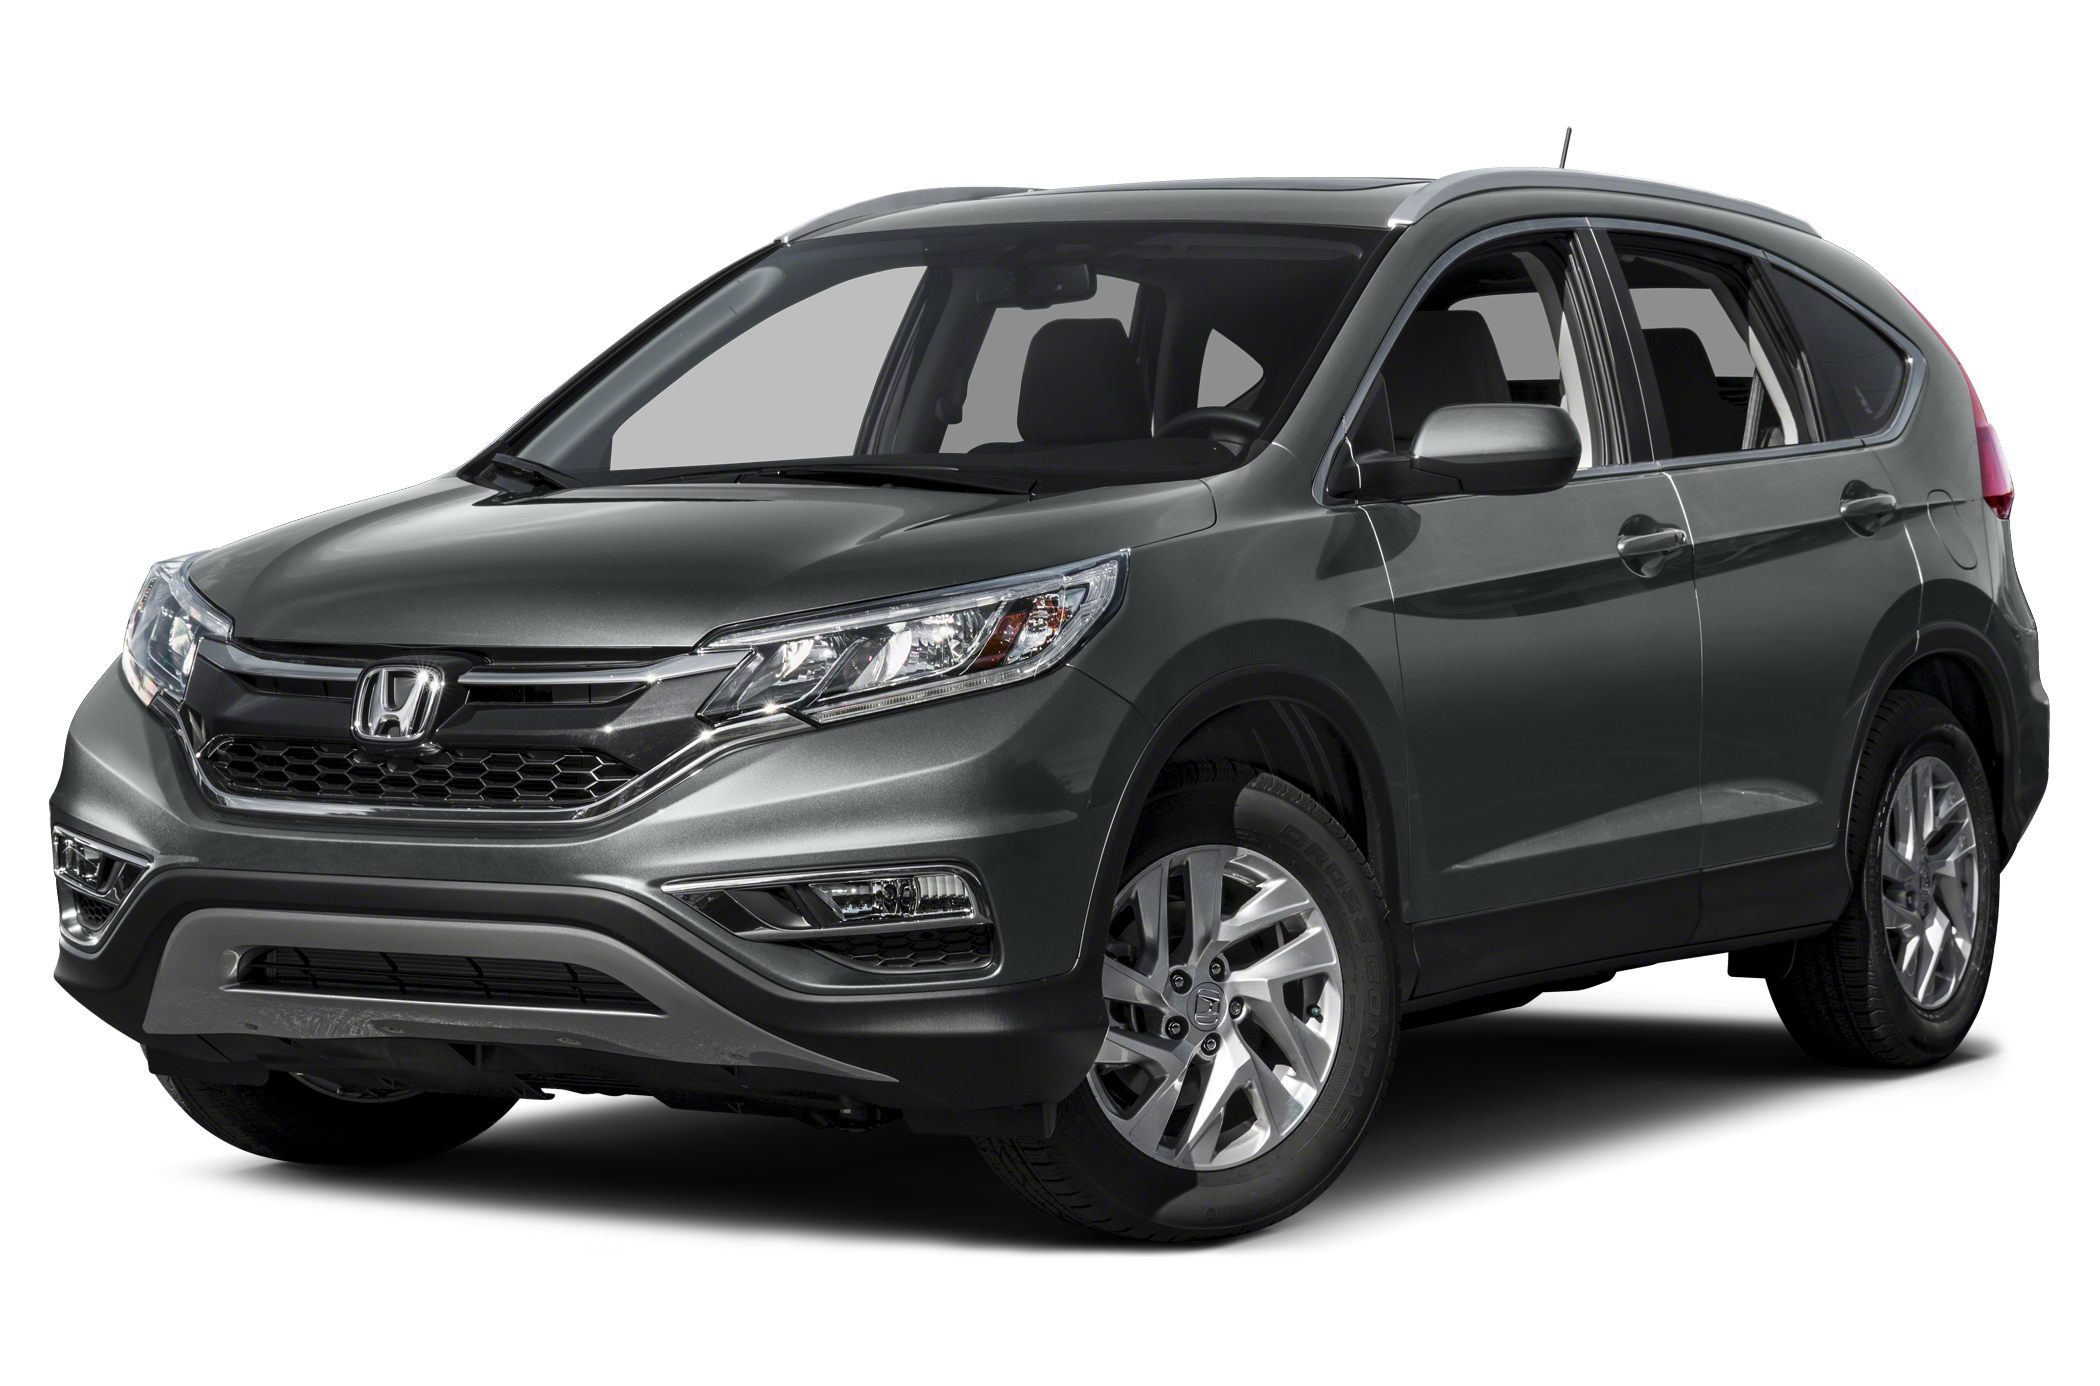 2015 Honda CR-V EX-L SUV for sale in Lawrence for $28,996 with 4,813 miles